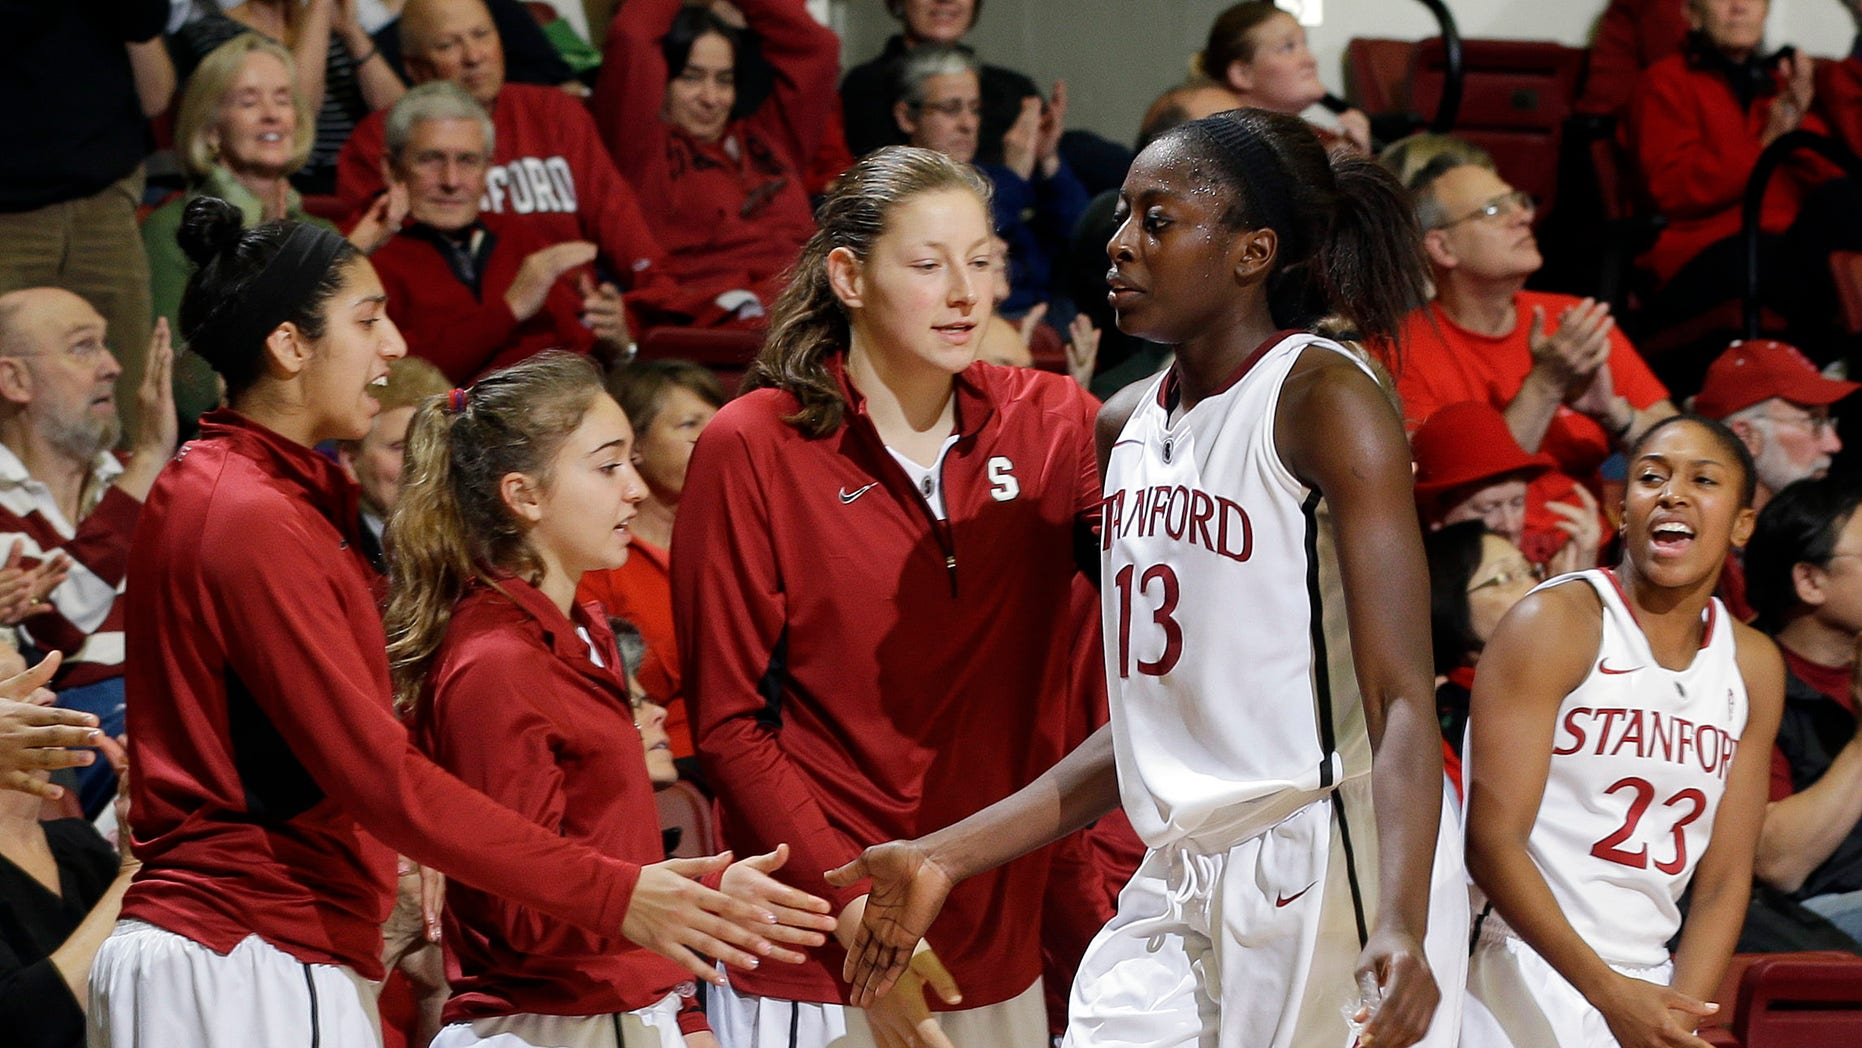 Stanford's Chiney Ogwumike (13) shakes hands with teammates on the bench against Pacific during the second half of an NCAA women's college basketball game in Stanford, Calif., Saturday, Dec. 15, 2012. (AP Photo/Marcio Jose Sanchez)